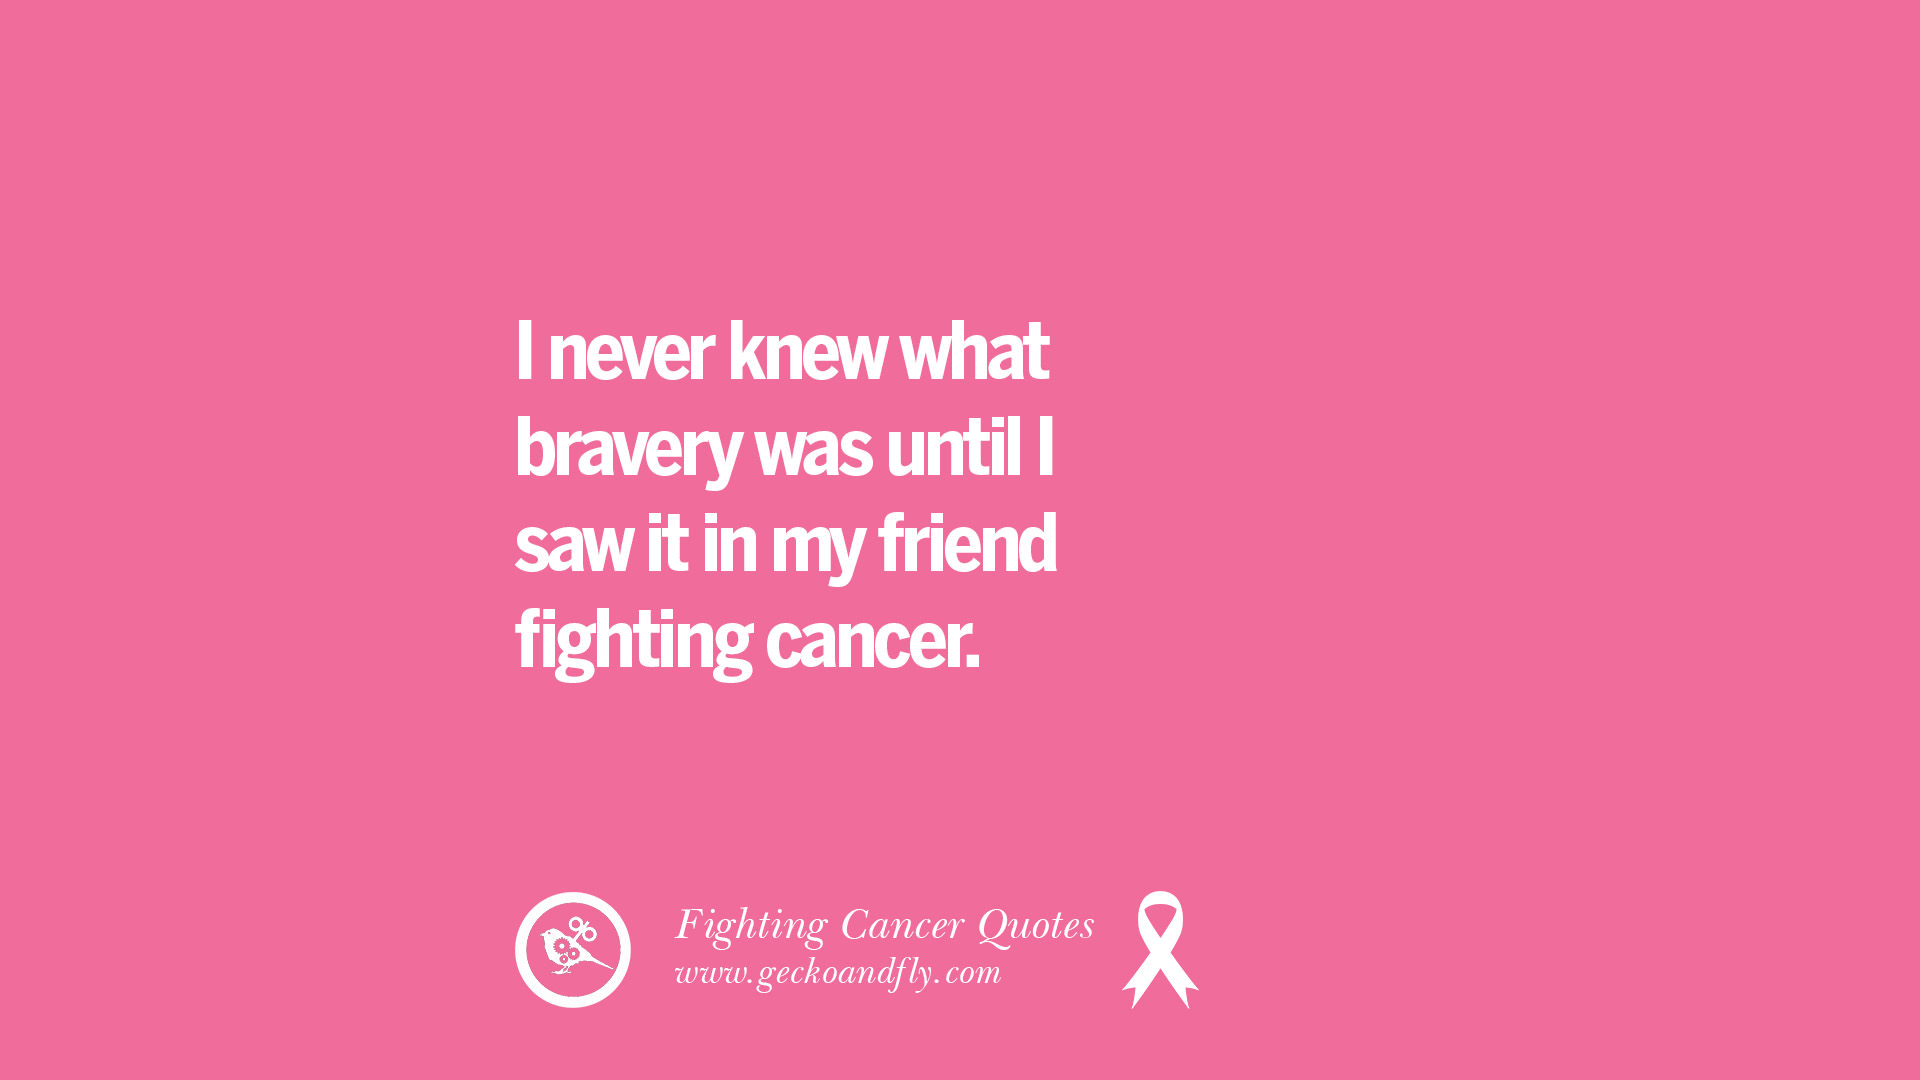 quotes on fighting cancer and never giving up hope